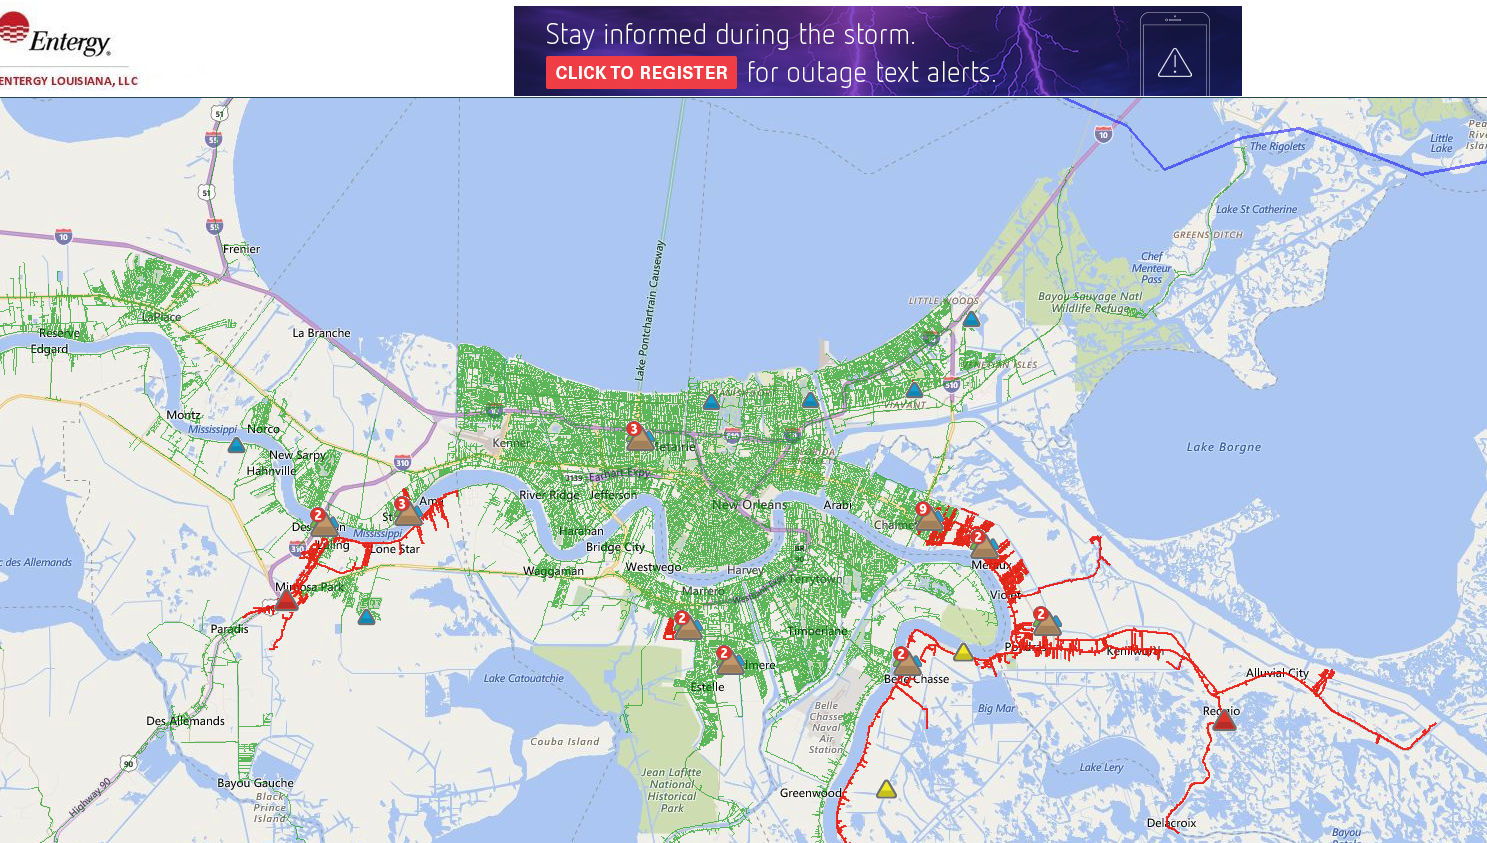 . winter storm leaves thousands of entergy customers without power